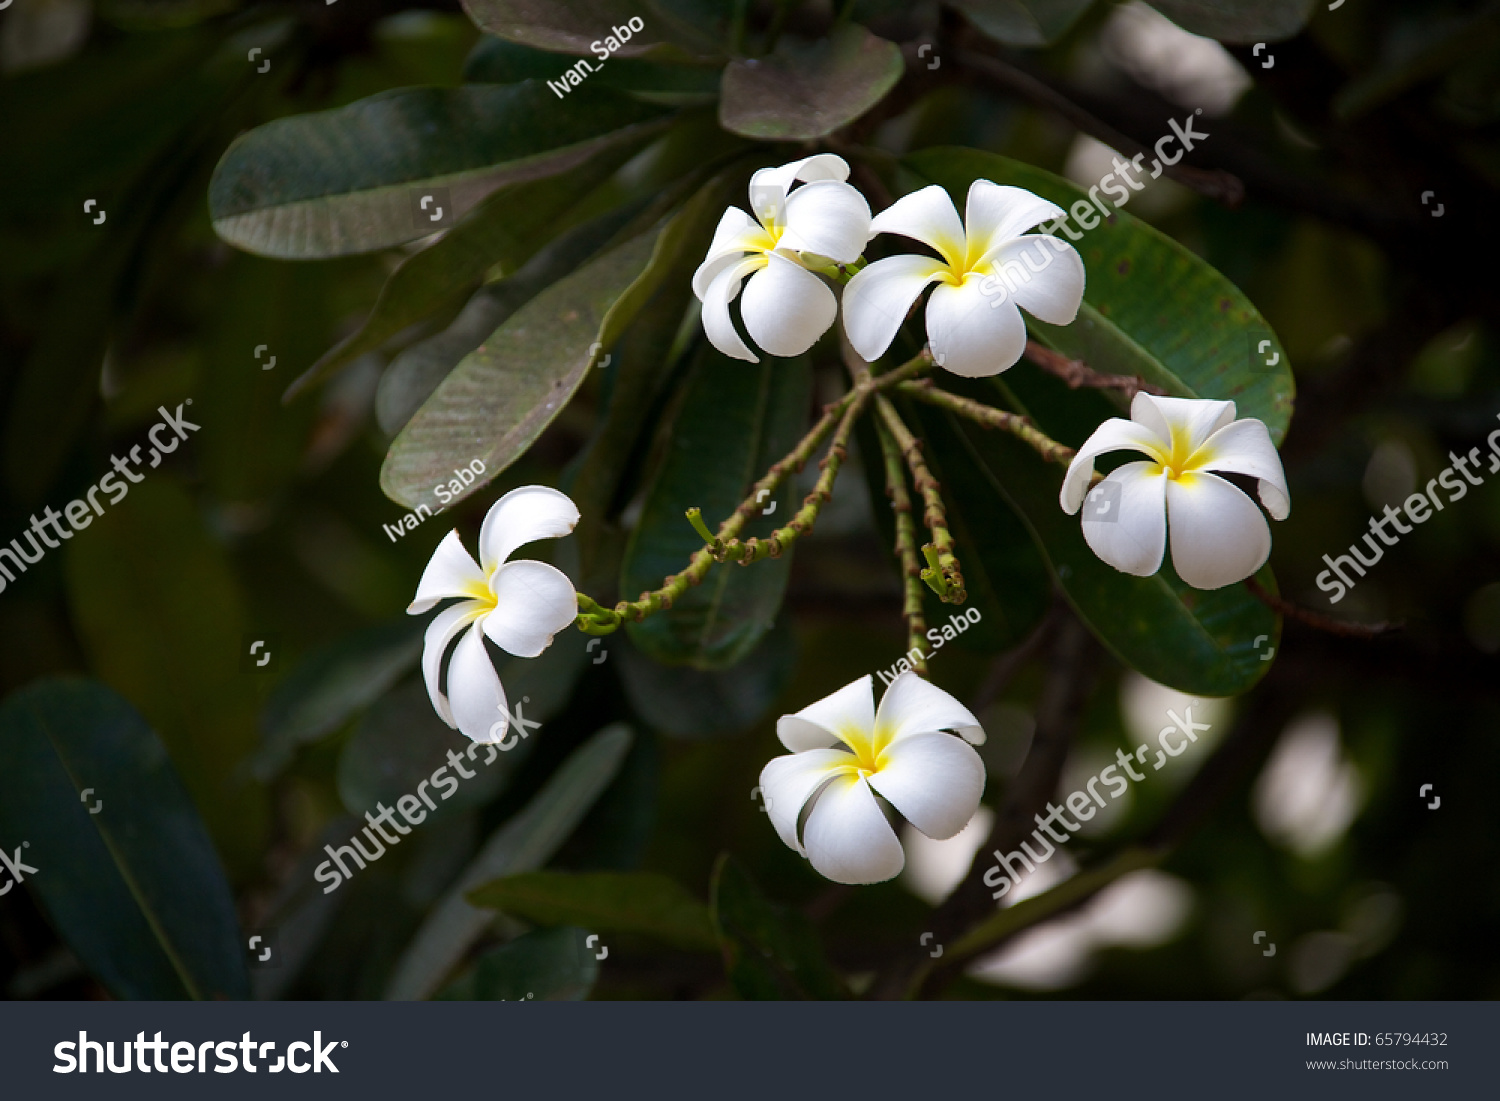 Hawaiian plumeria flowers growing on tree stock photo royalty free hawaiian plumeria flowers growing on a tree izmirmasajfo